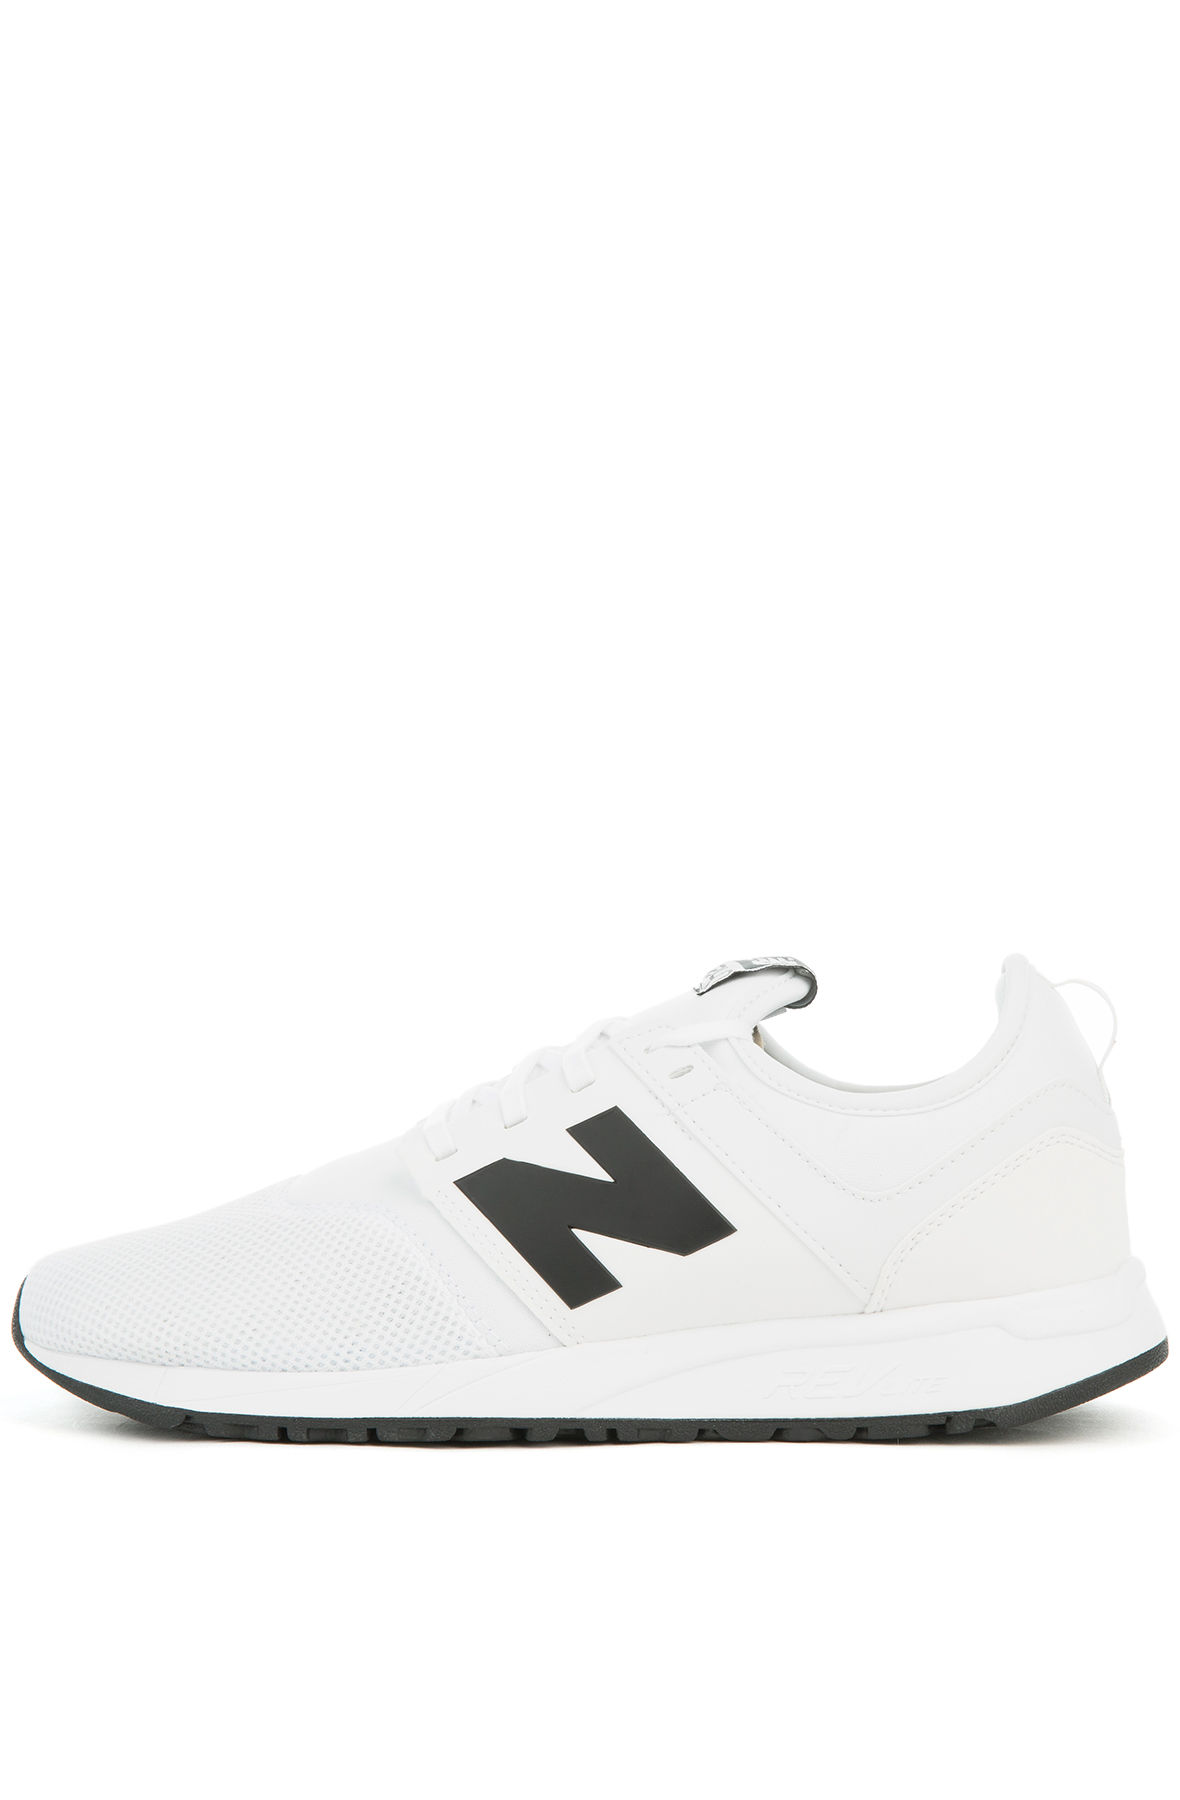 Image of The 247 Sneaker in White and Black